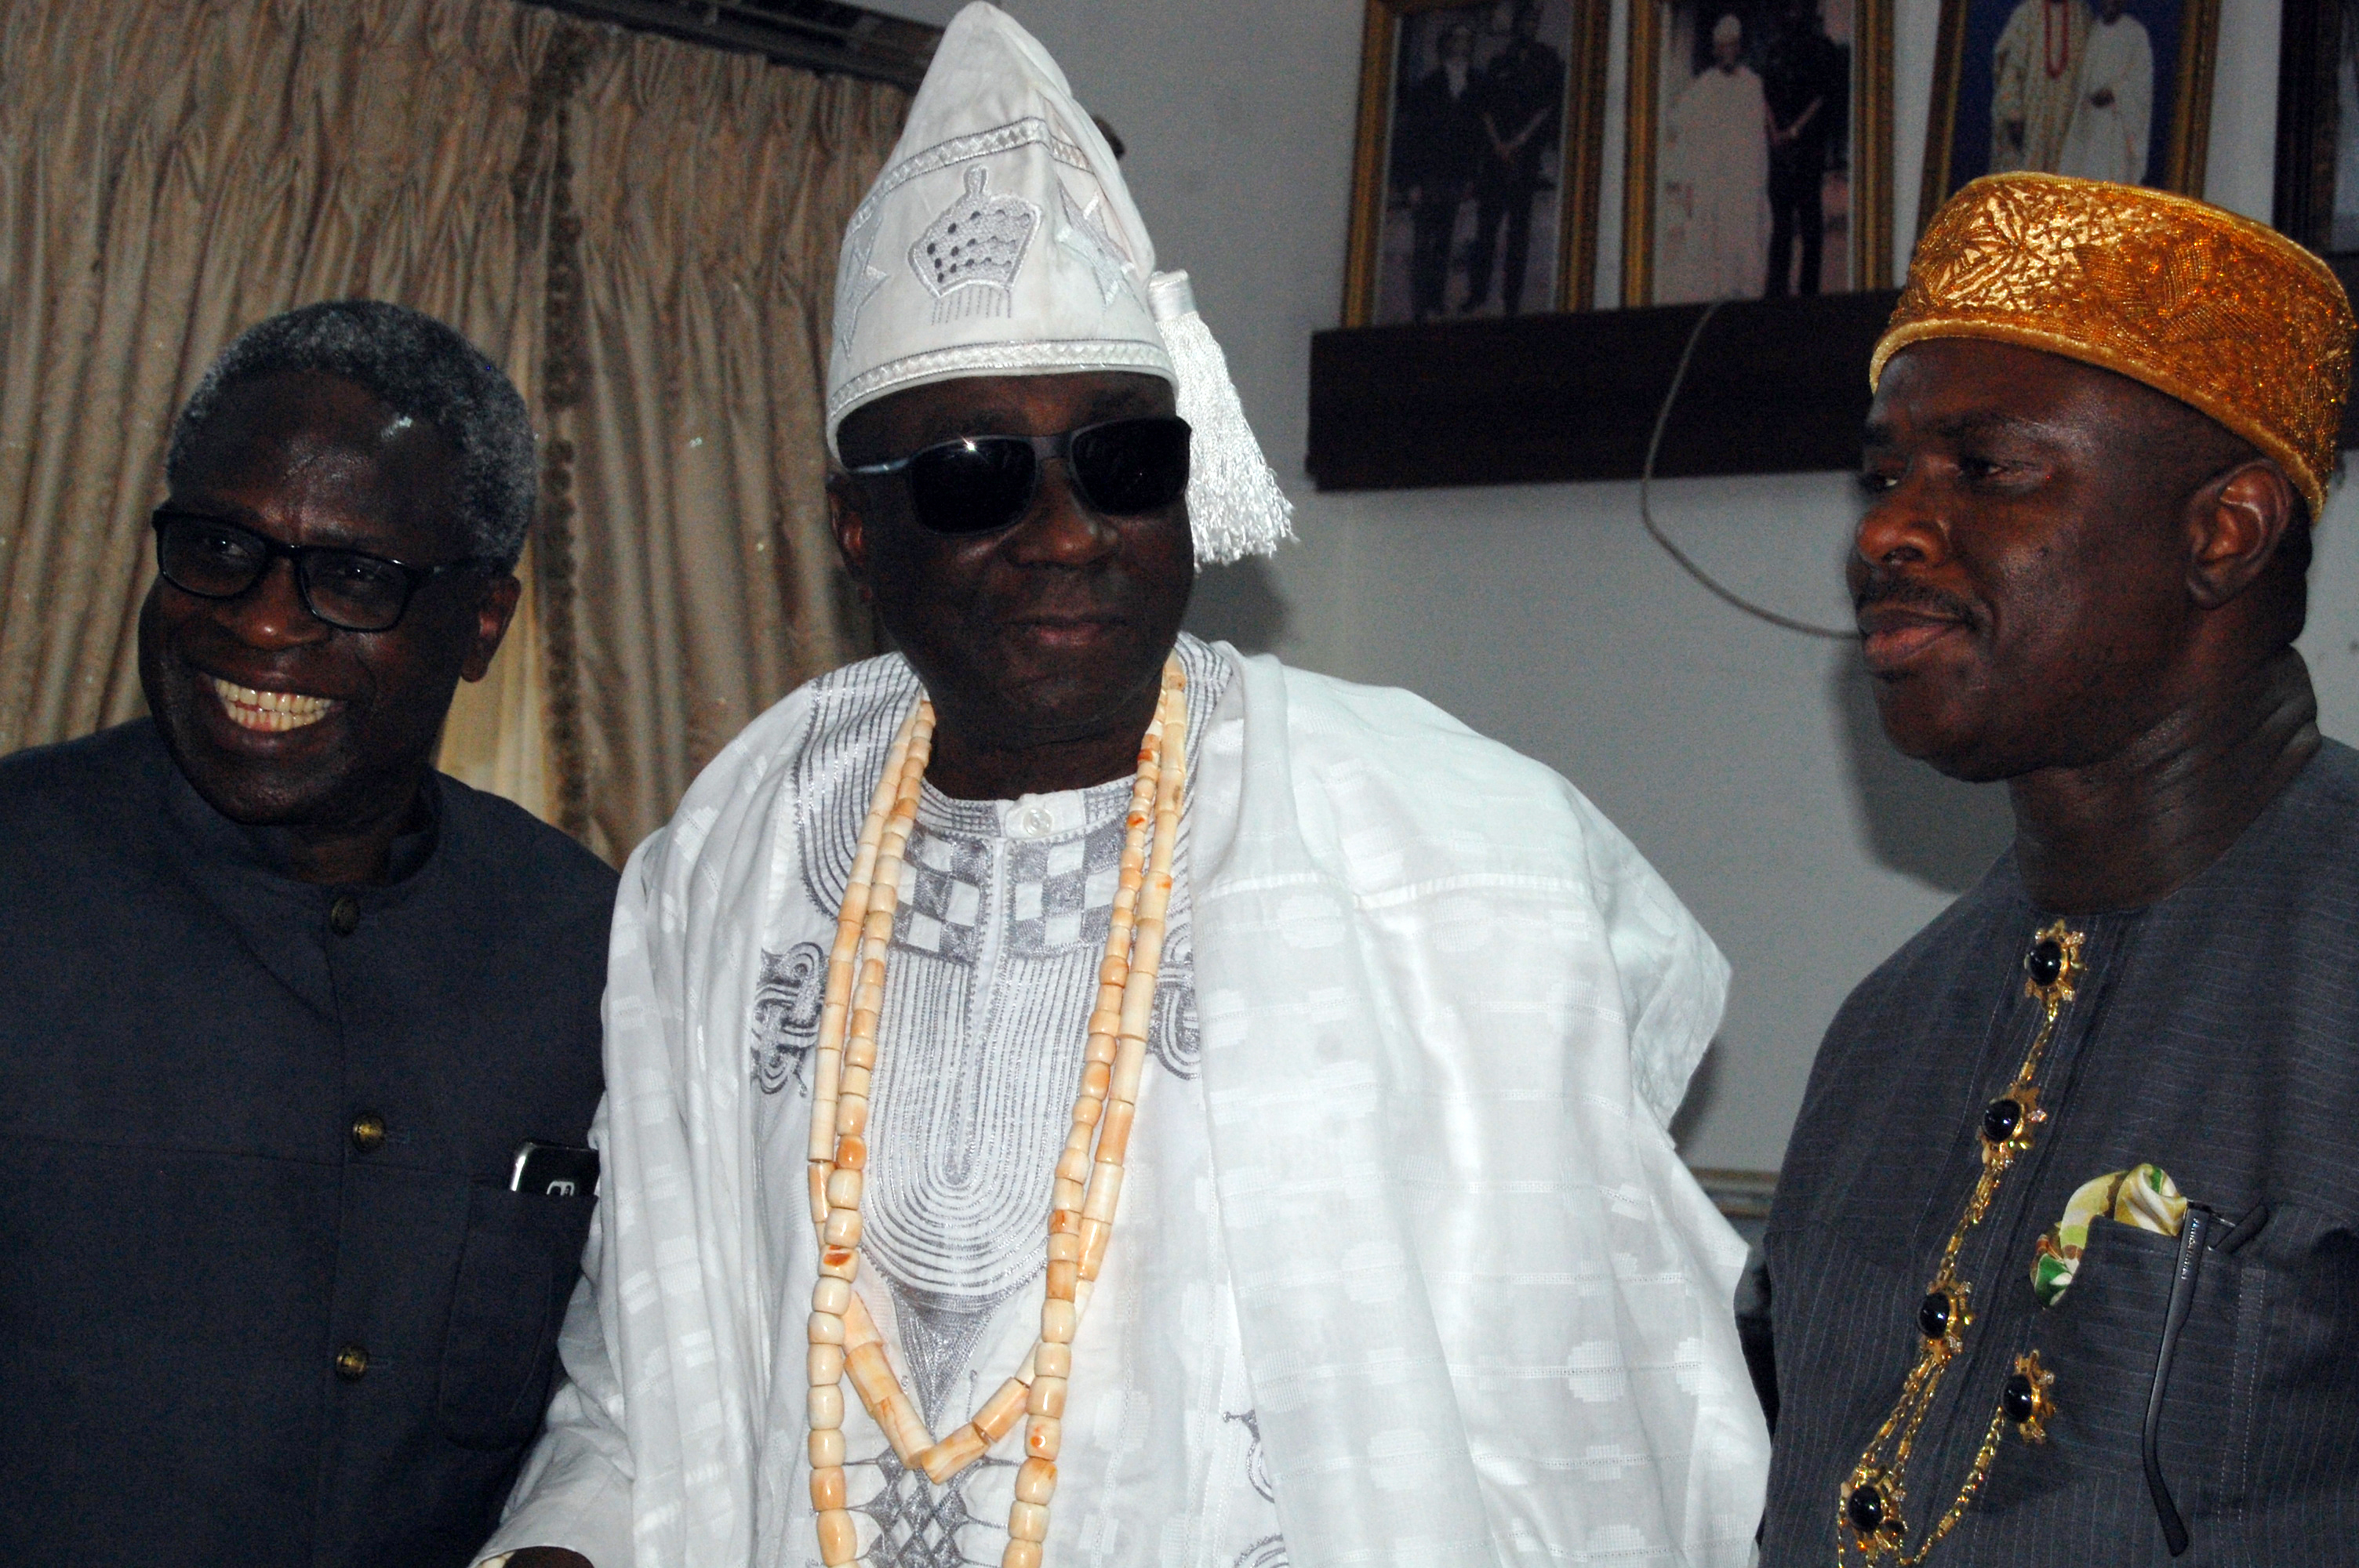 From Right, the Director General of the Nigerian Maritime Administration and Safety Agency (NIMASA) Dr. Dakuku Peterside, The Oba of Lagos, Oba Rilwan Akiolu and the Executive Director, Operations, NIMASA, Engr. Rotimi Fashakin during the visit of the NIMASA Management to the Oba's Palace in Lagos recently.